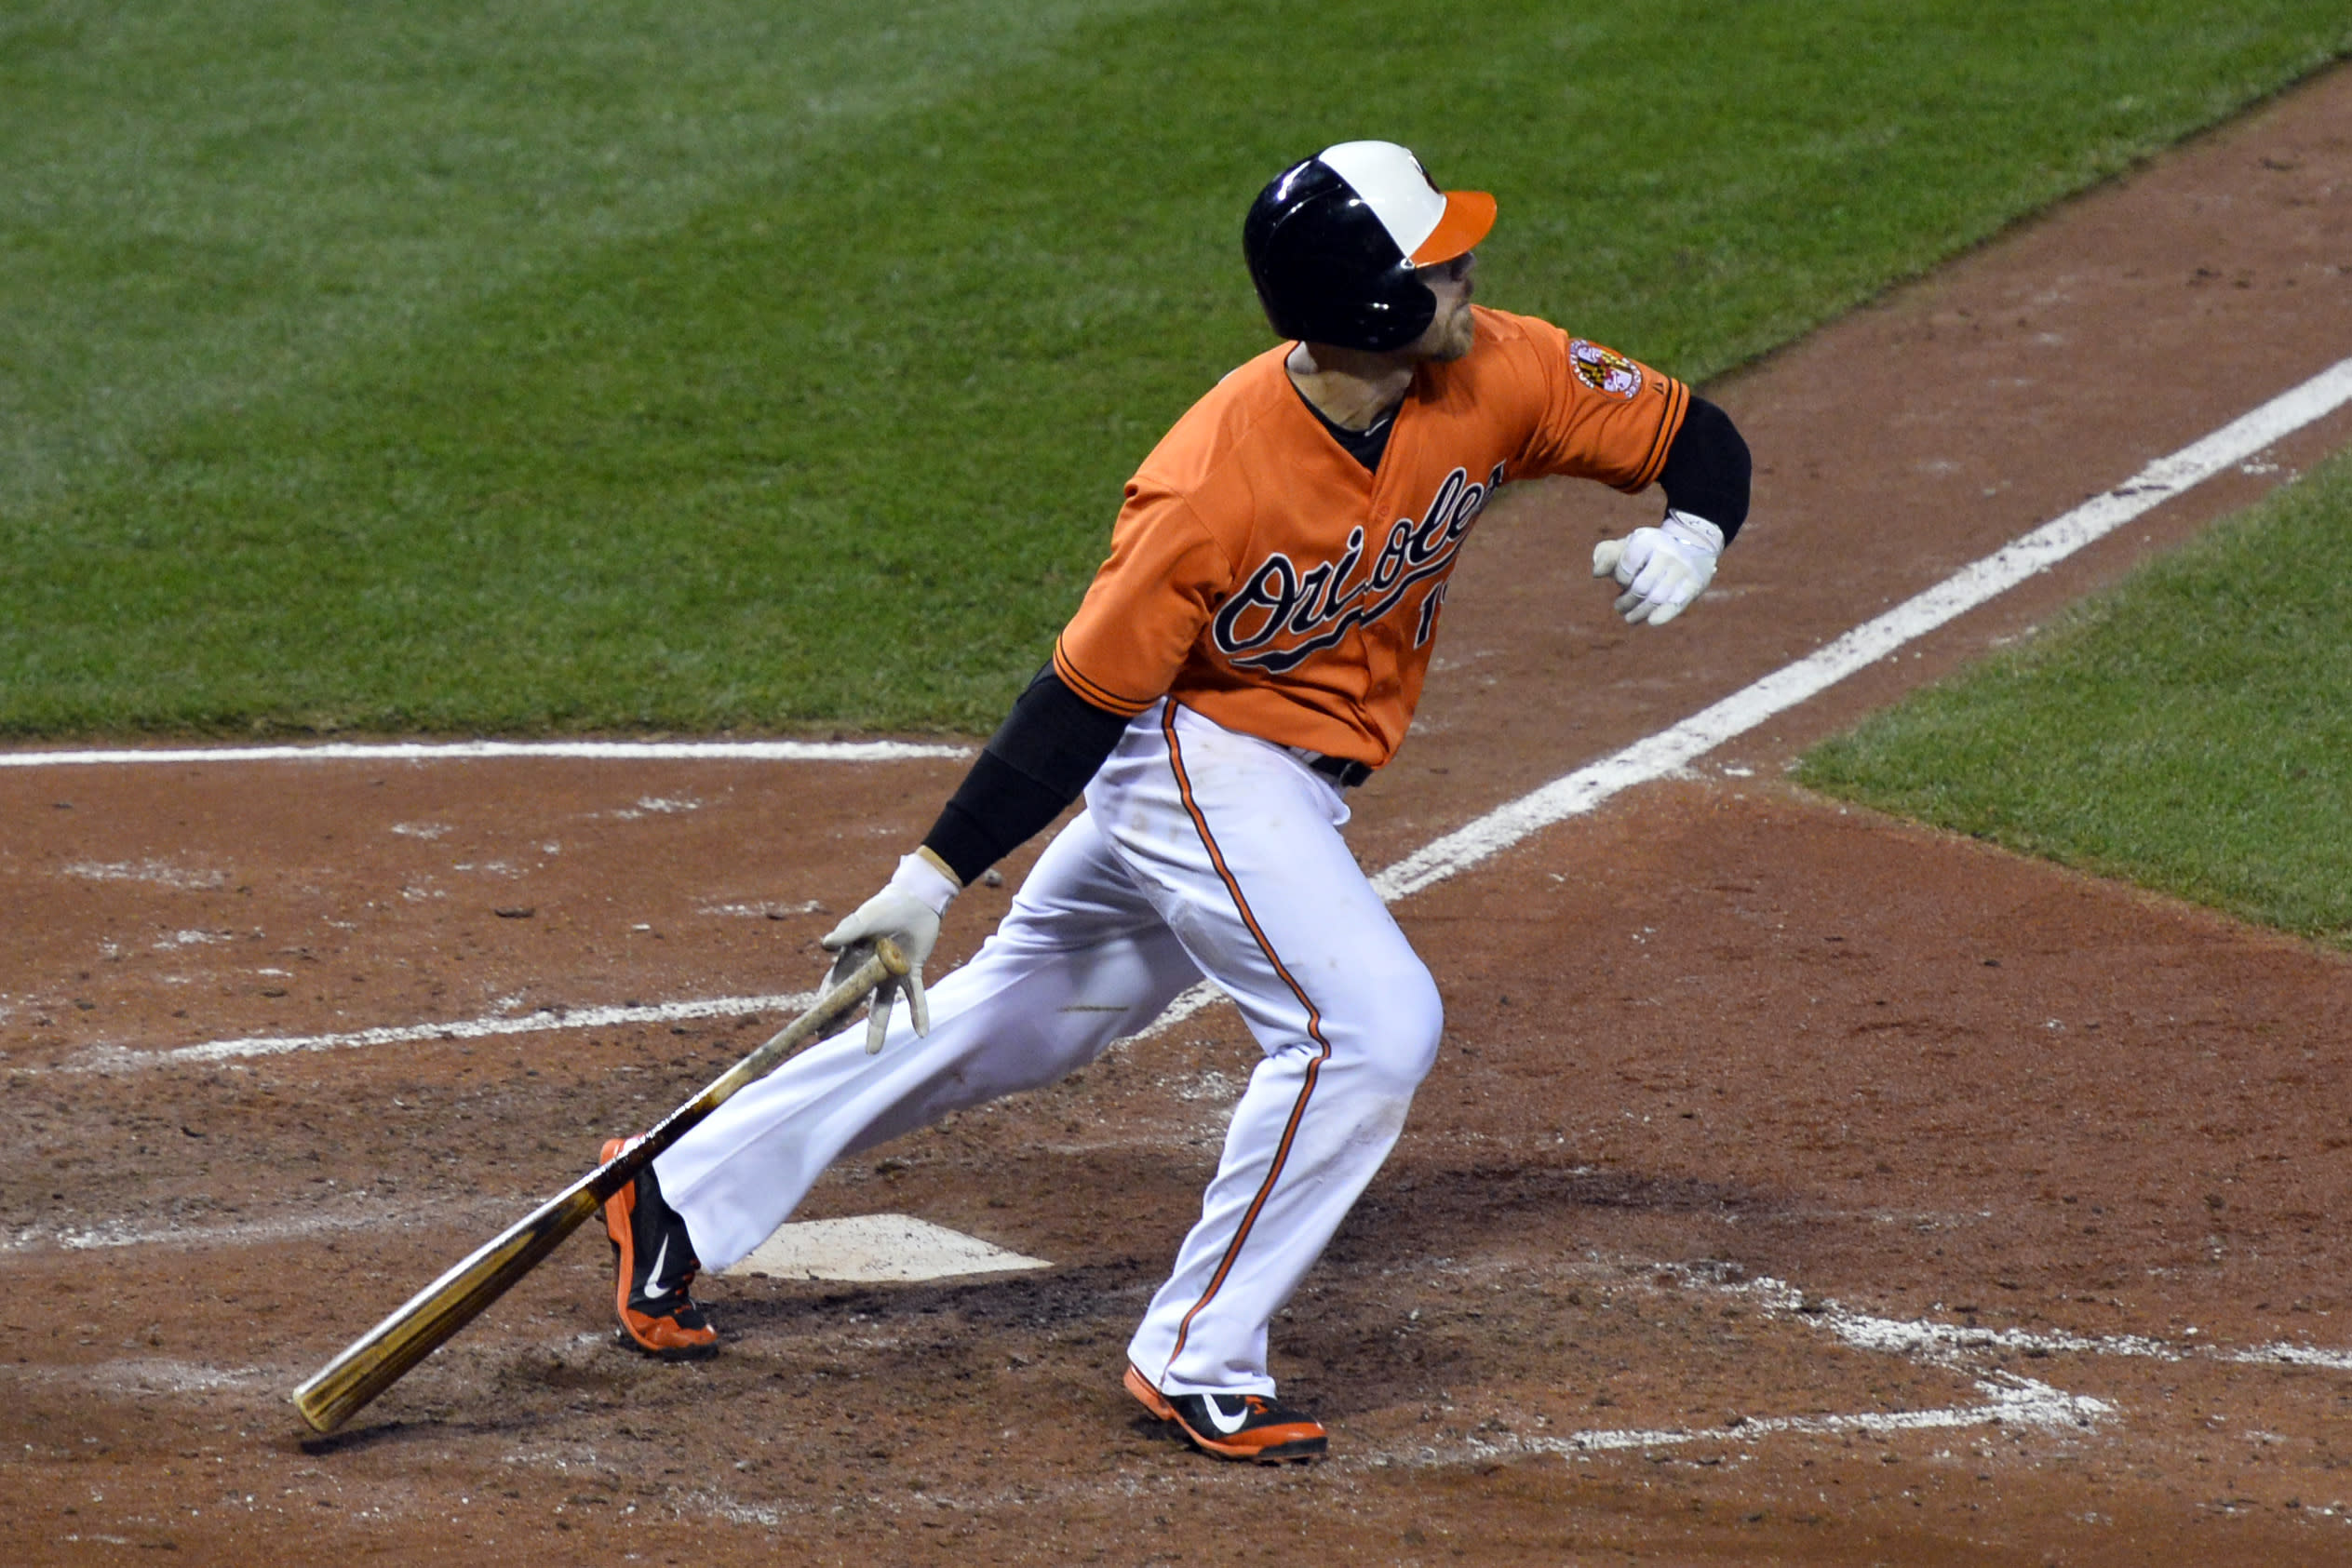 Davis says he wants to stay, but hasn't heard from O's